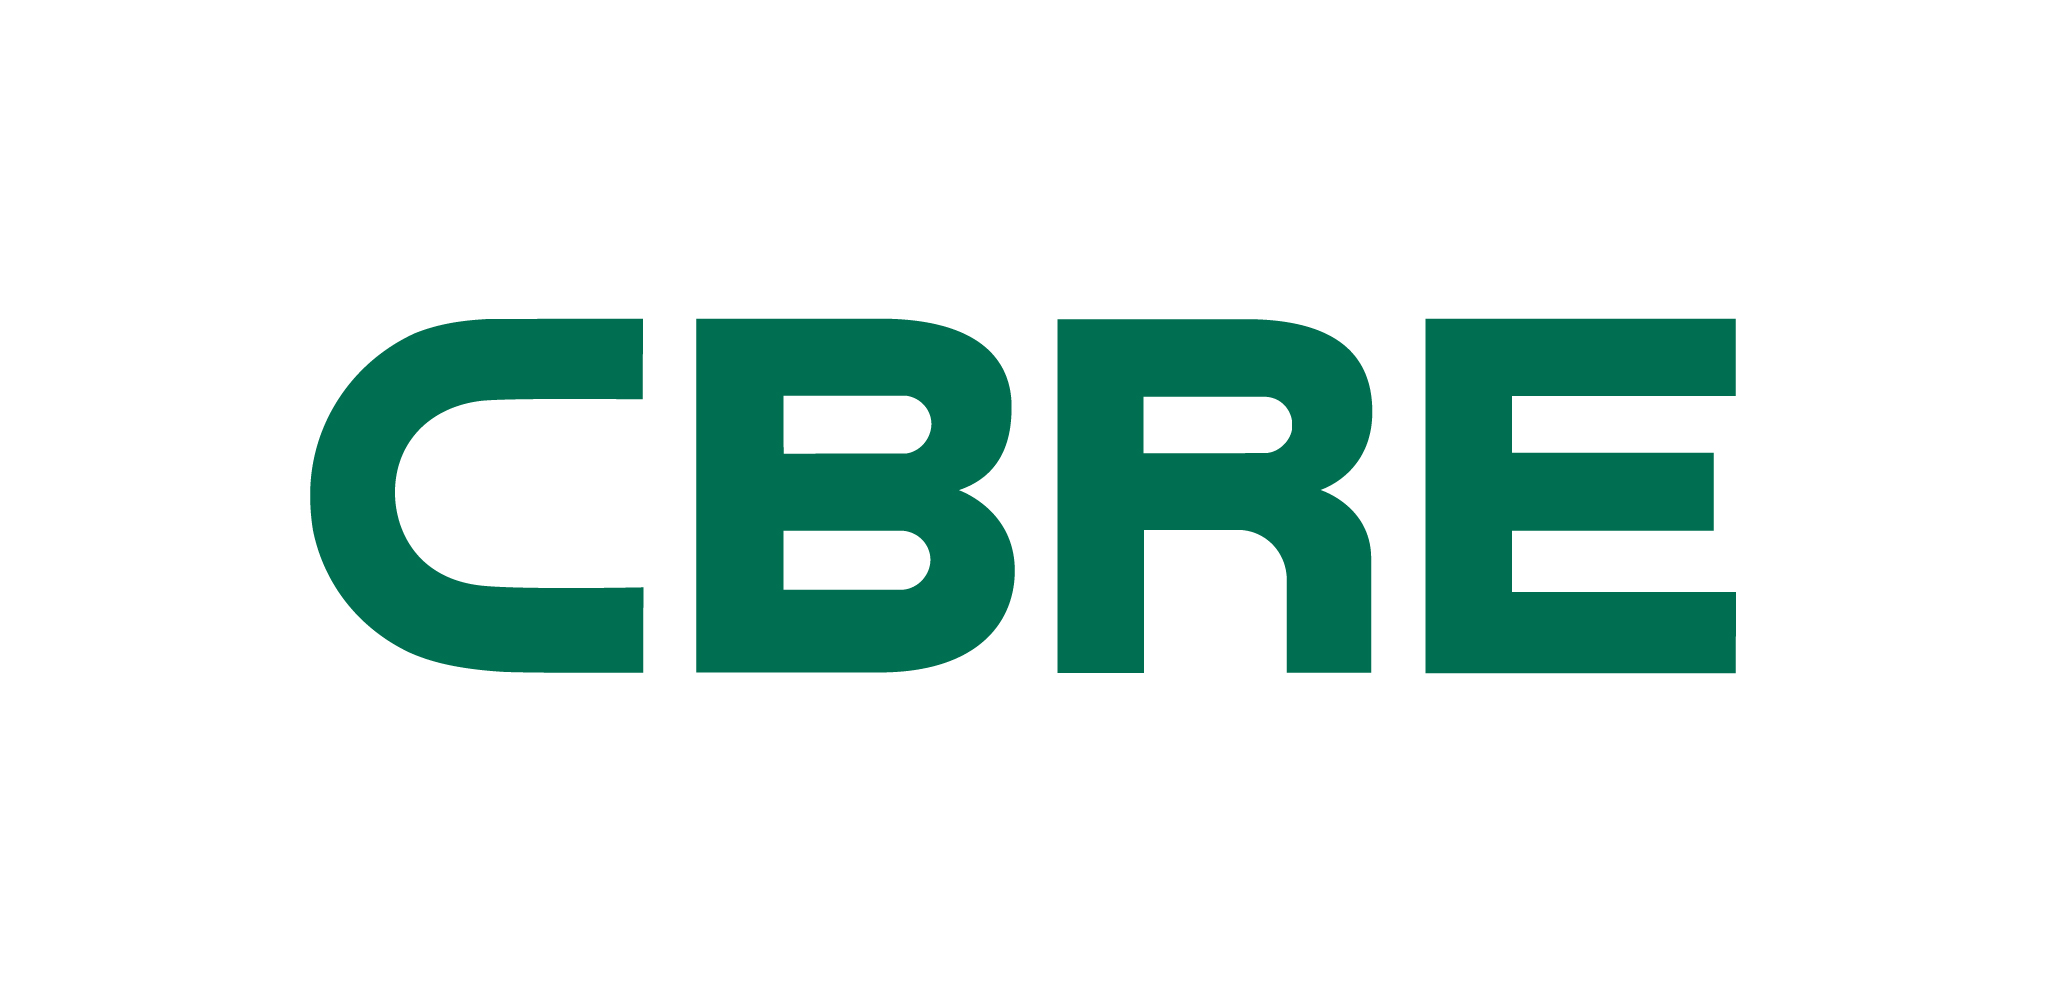 CBRE BOLSTERS LEEDS TEAM WITH NEW HIRES AND PROMOTIONS